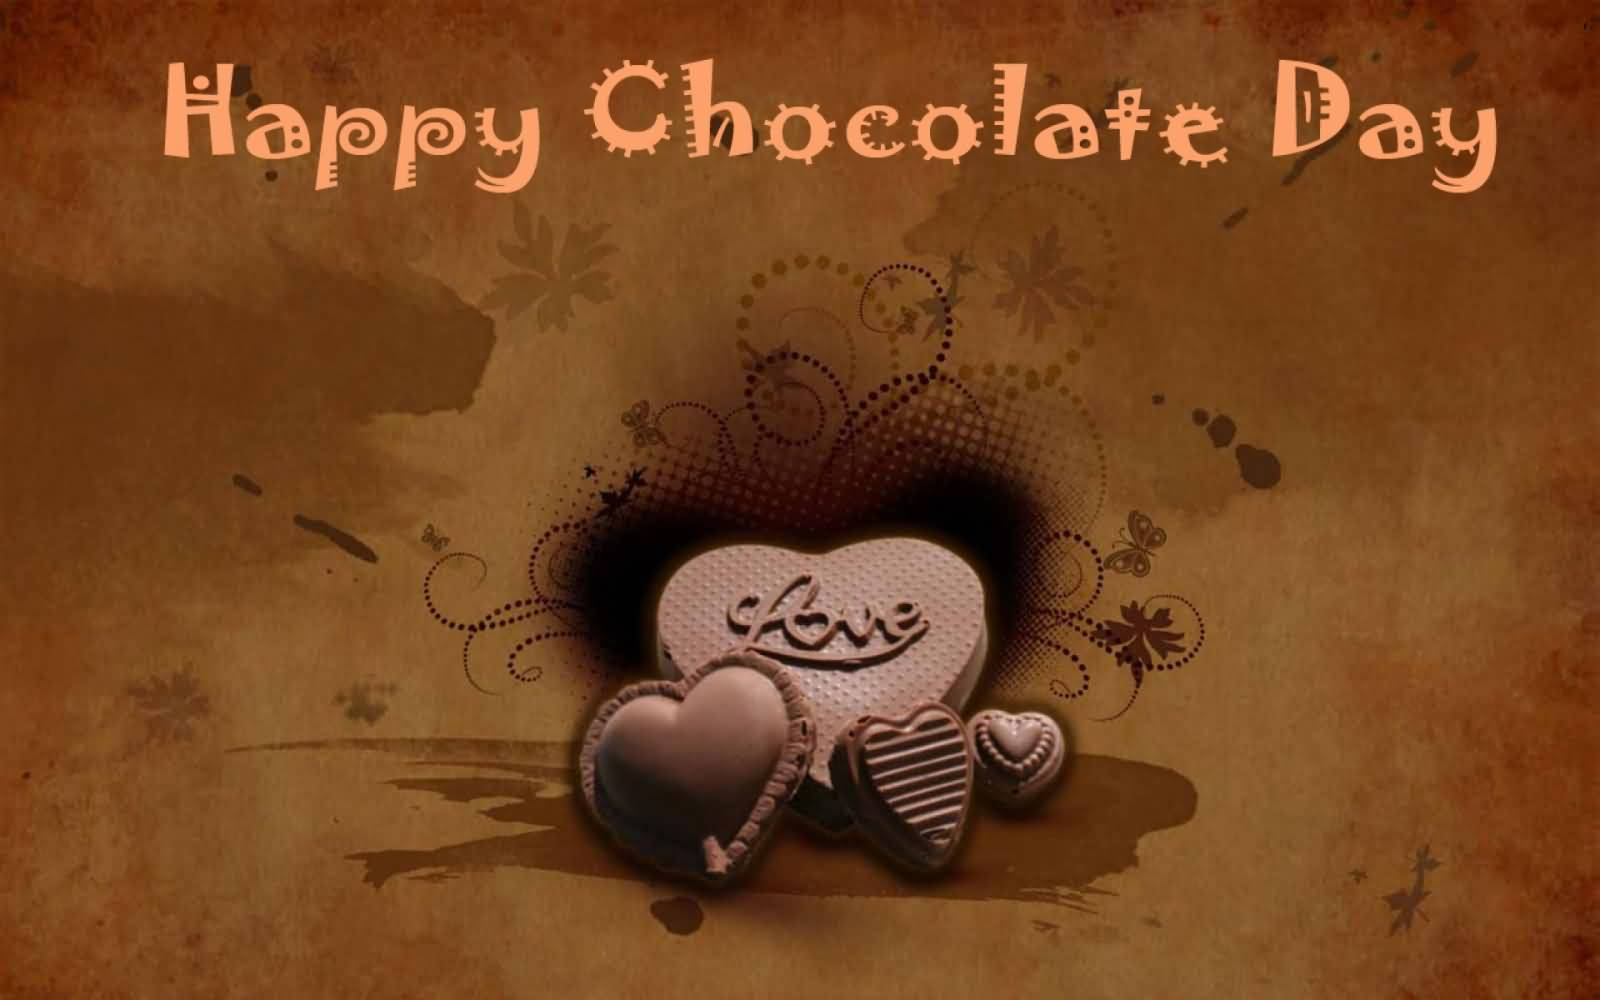 Happy chocolate day wishes heart love graphic pc desktop facebook hd happy chocolate day wishes heart love graphic pc desktop facebook hd wallpaper voltagebd Choice Image